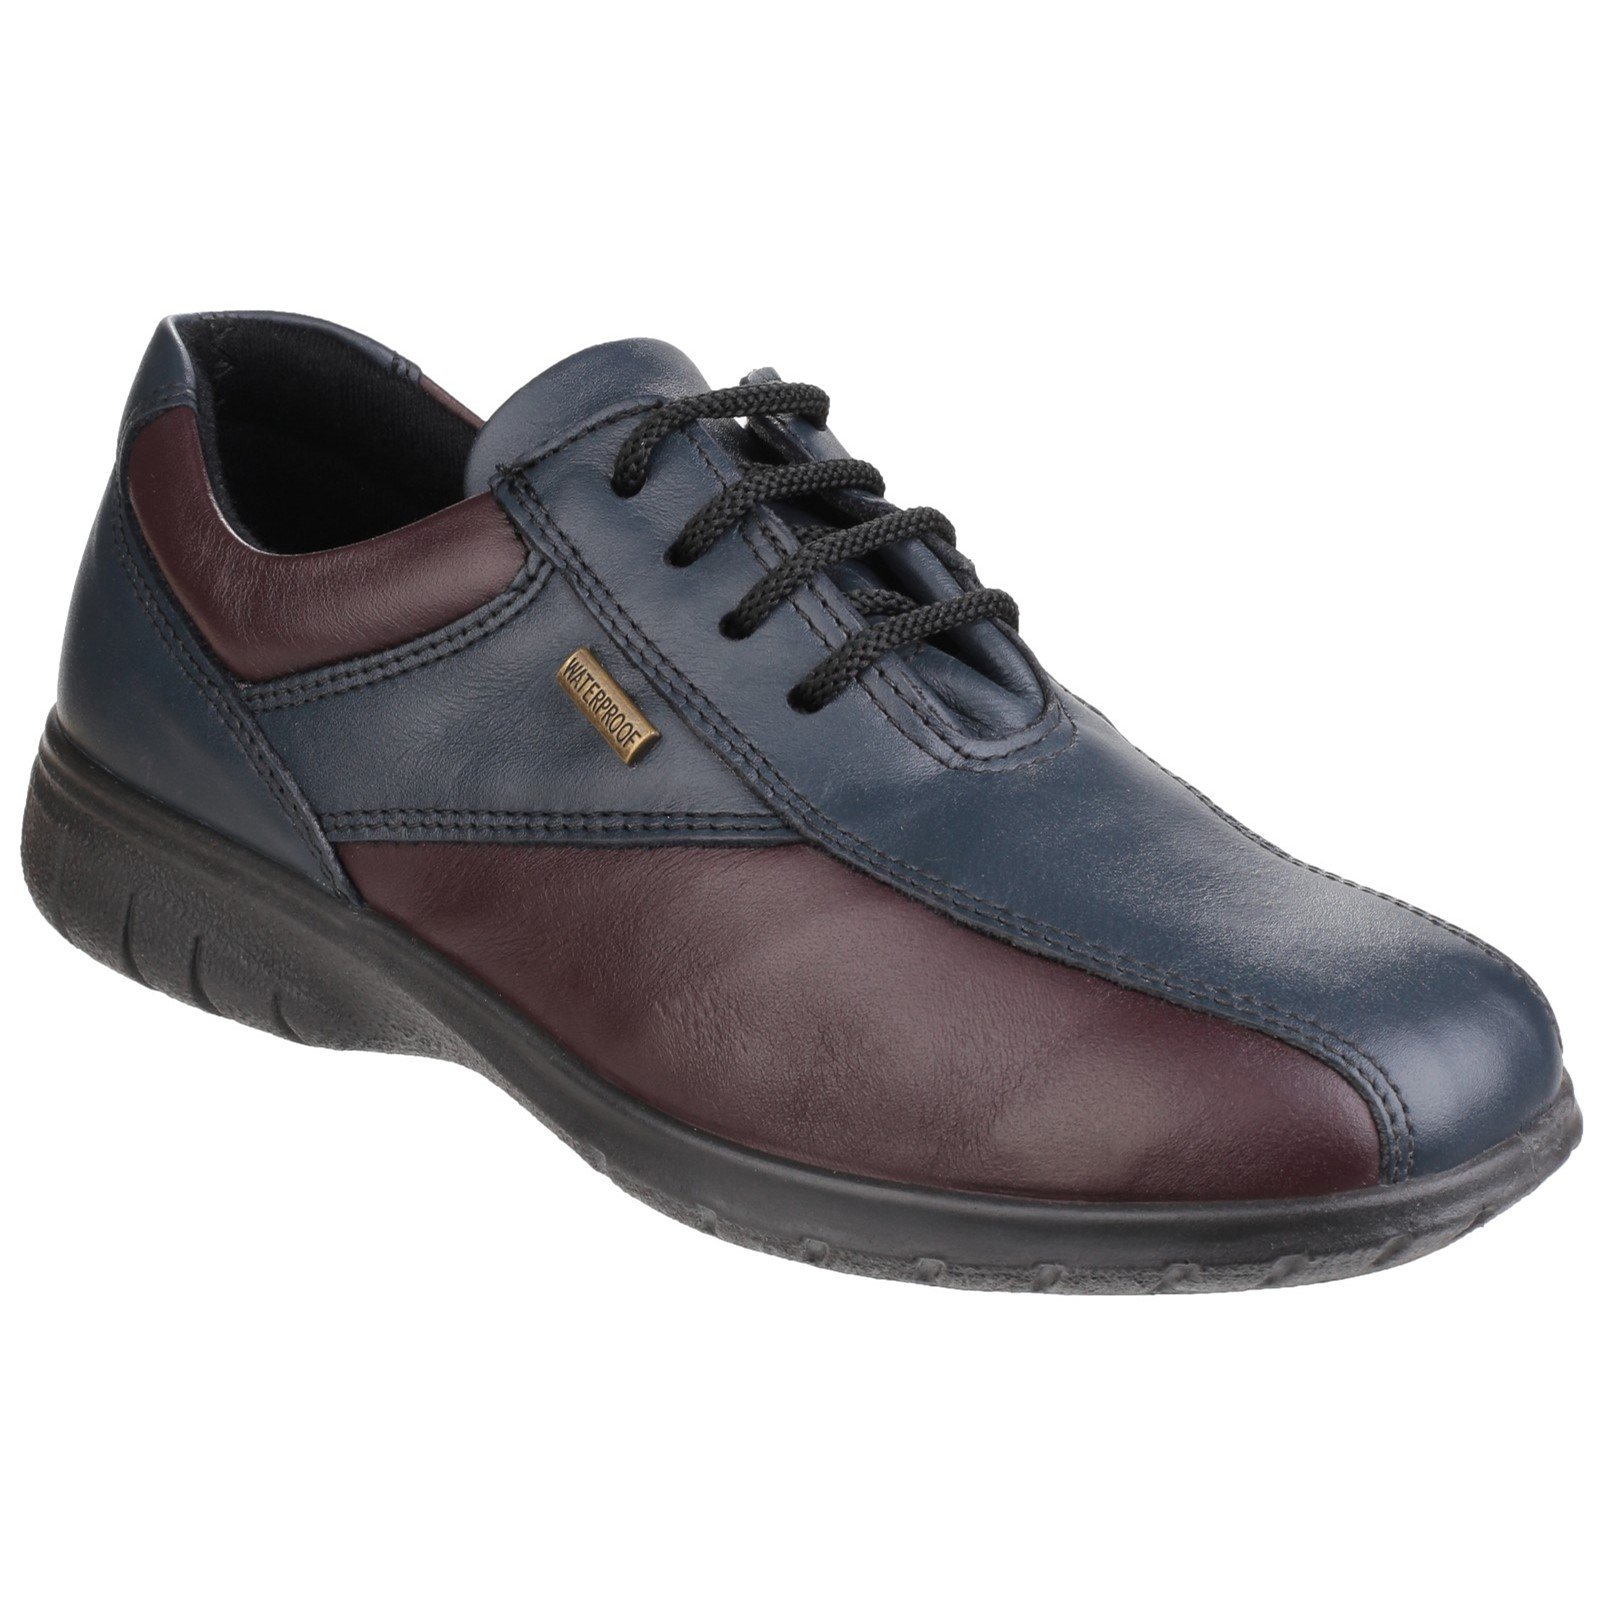 Cotswold Women's Collection Salford Shoe Various Colours 32981 - Navy/Bordo 5